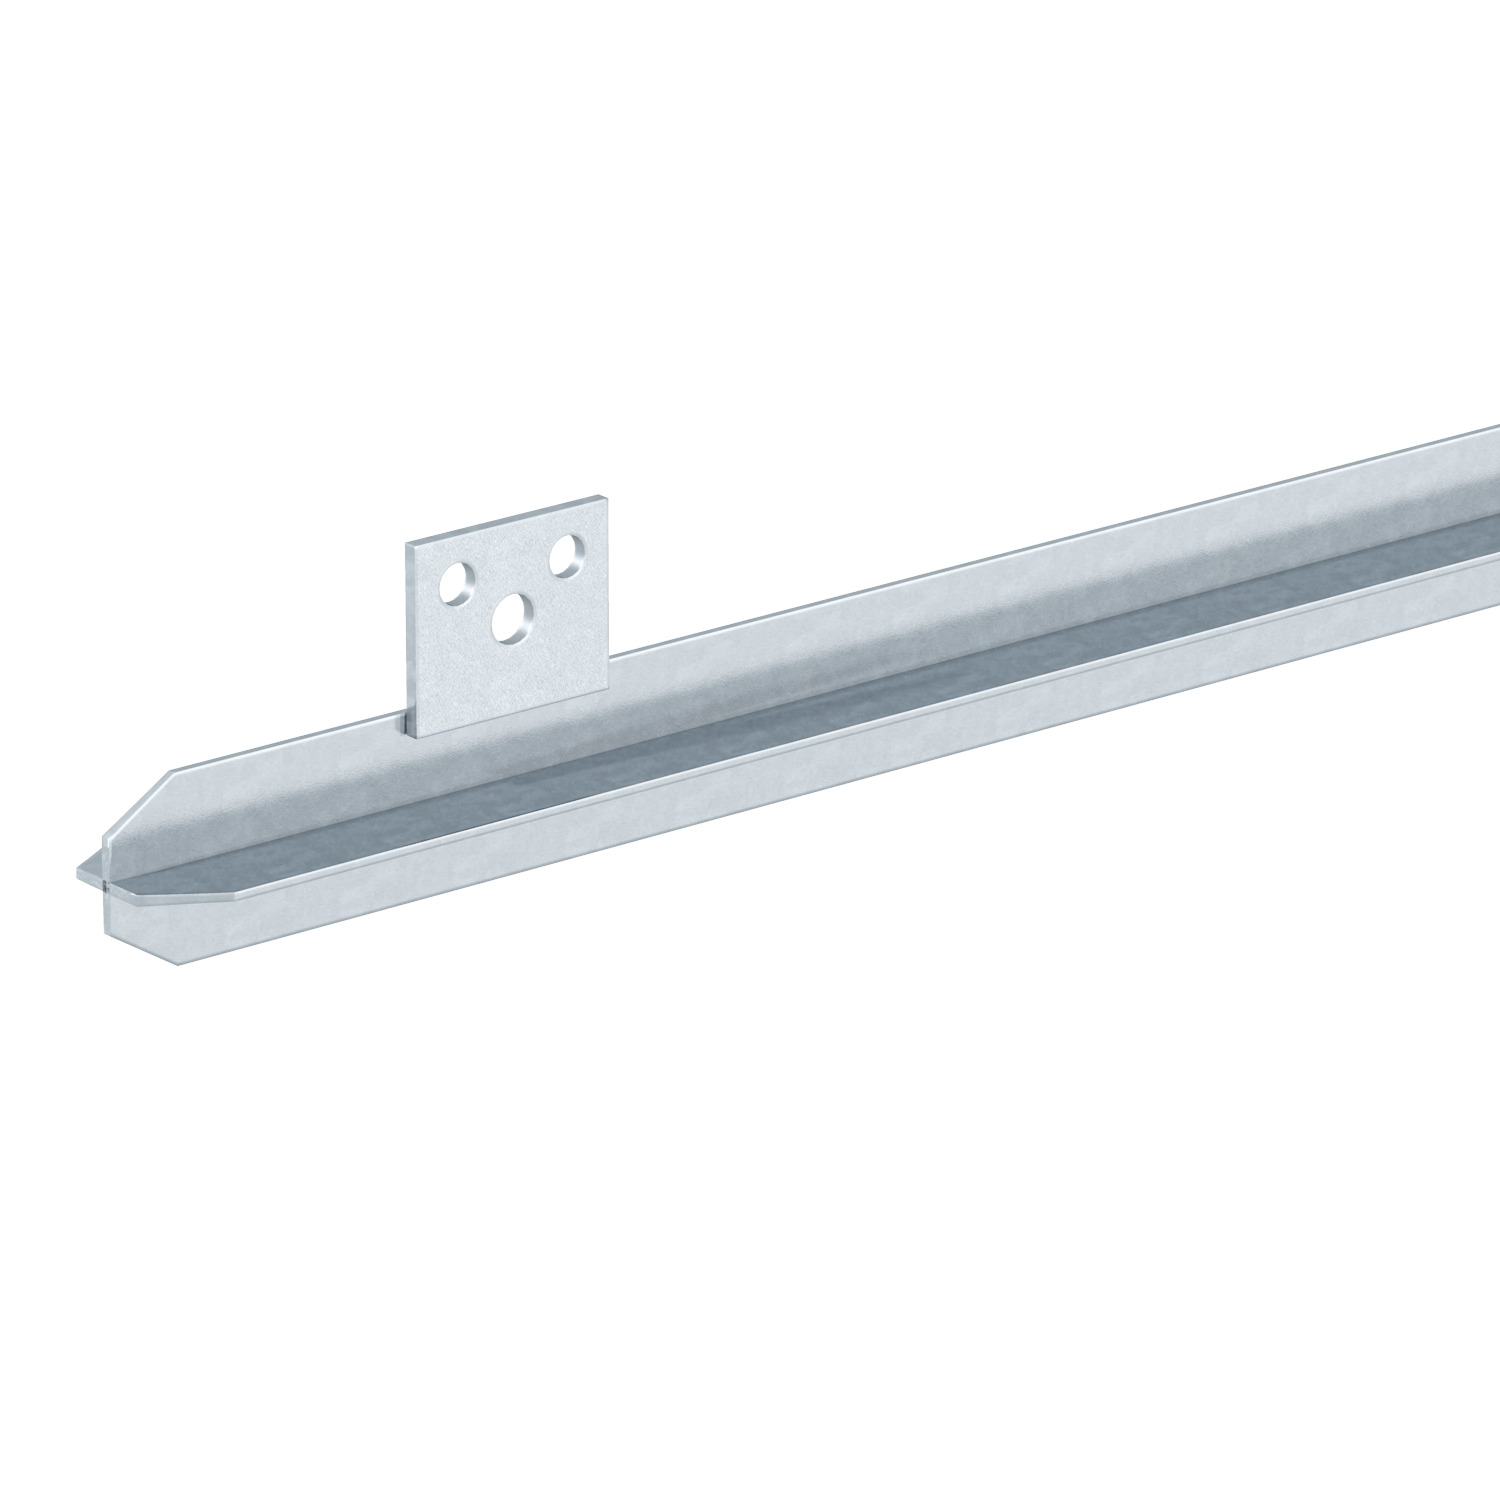 Profile earthing rod with connection strap